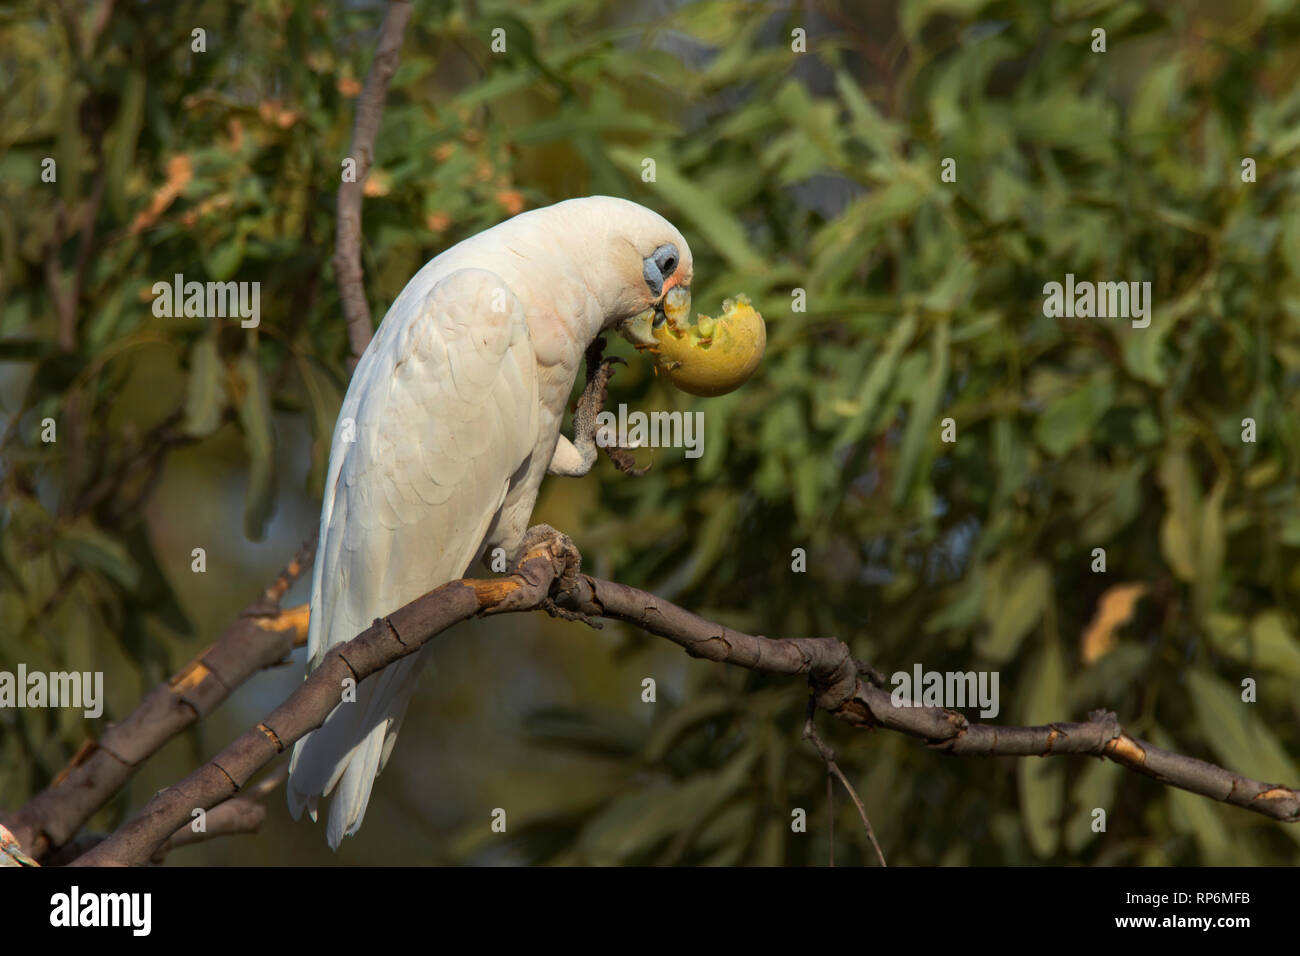 Little Corella, Cacatua sanguinea, a type of parrot, perched in a tree feeding on a small melon. Stock Photo